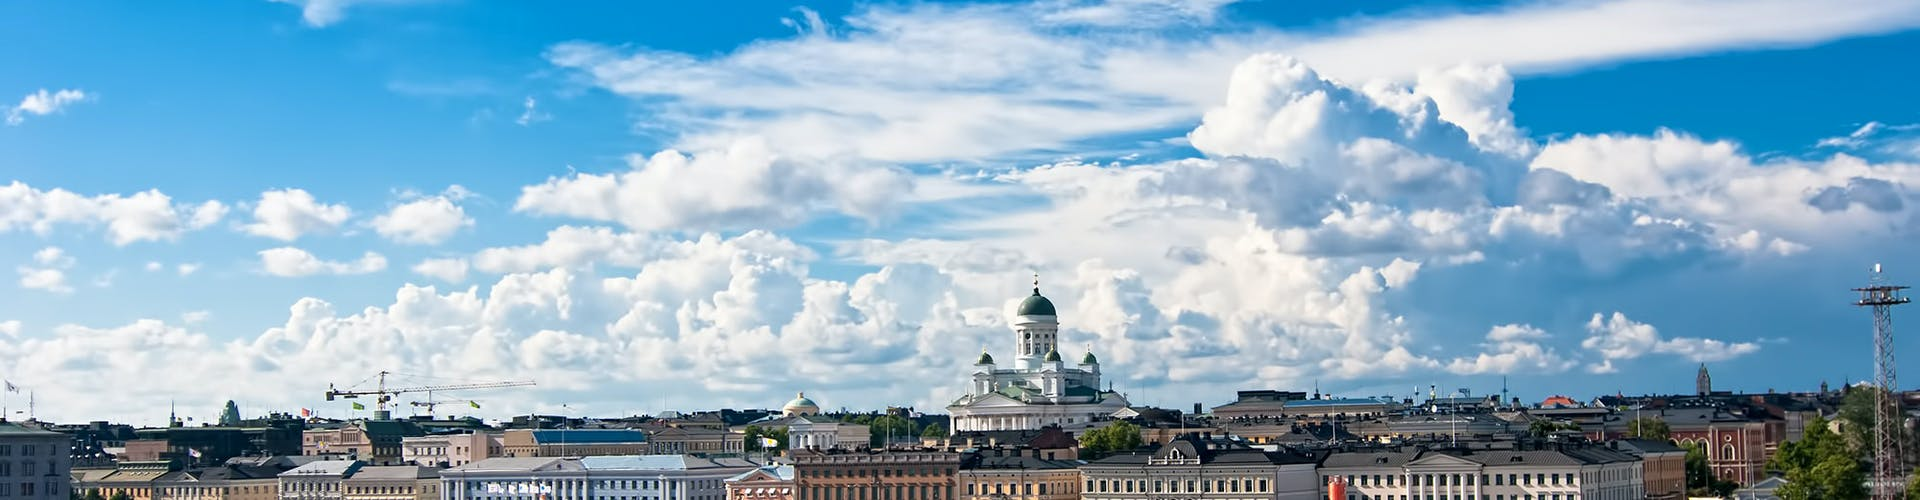 Study Master of Business Administration in Finland